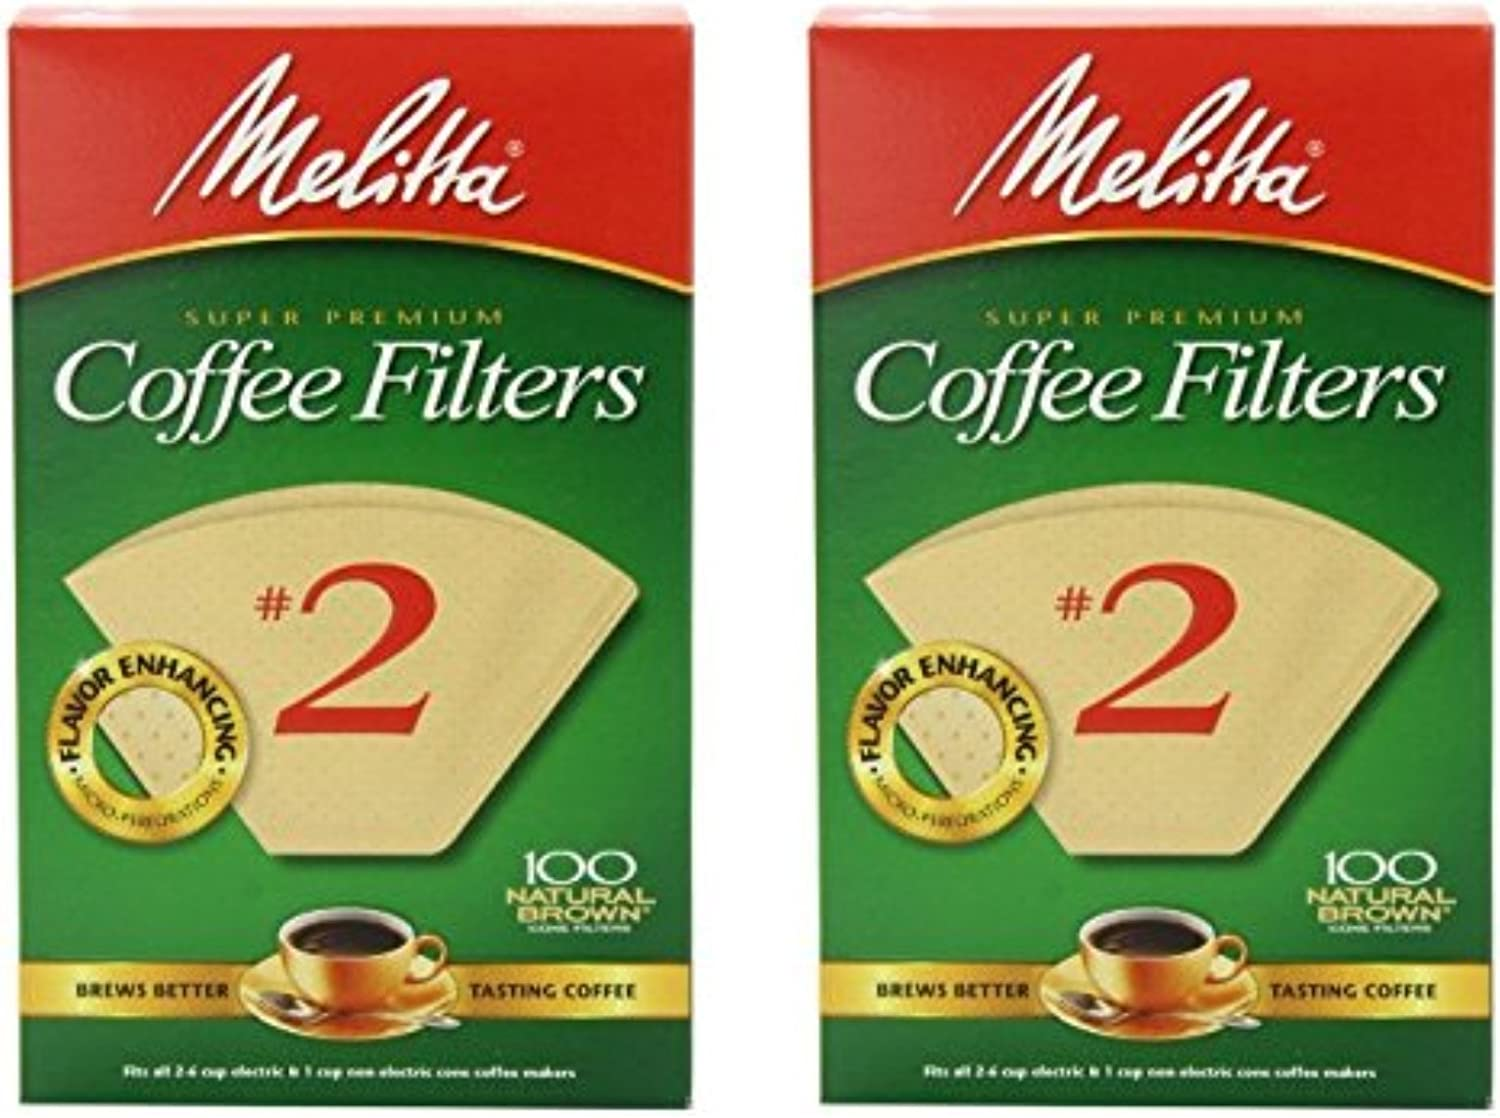 Melitta Cone Coffee Filter #2 - Natural Brown 100 Count (2 Pack) 71DsYpmc2BhL